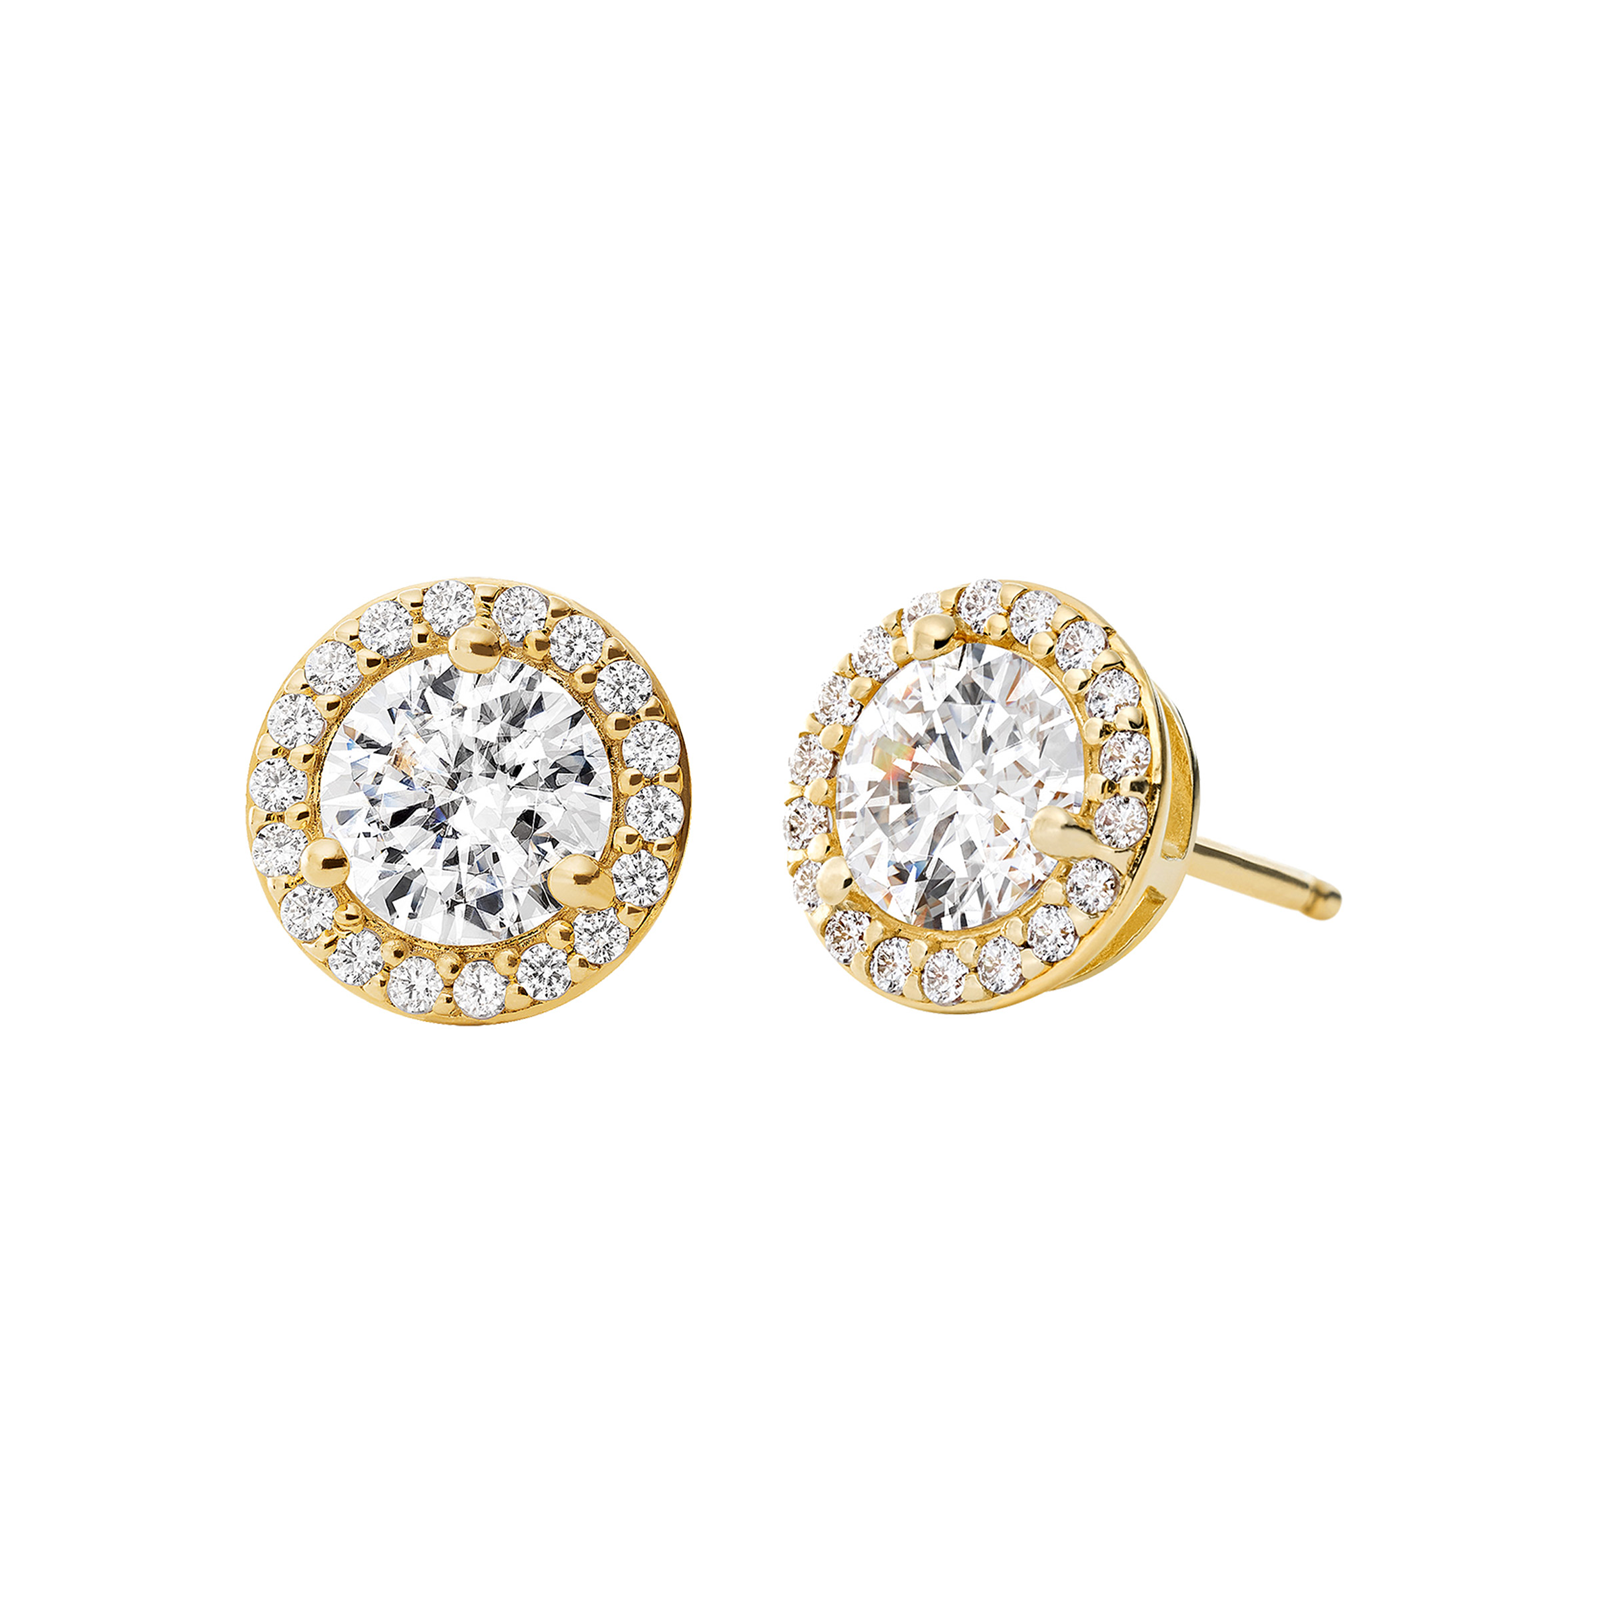 f4a424a14bcbc8 Michael Kors 14ct Gold Plated Halo Stud Earrings | Earrings | Jewellery |  Goldsmiths